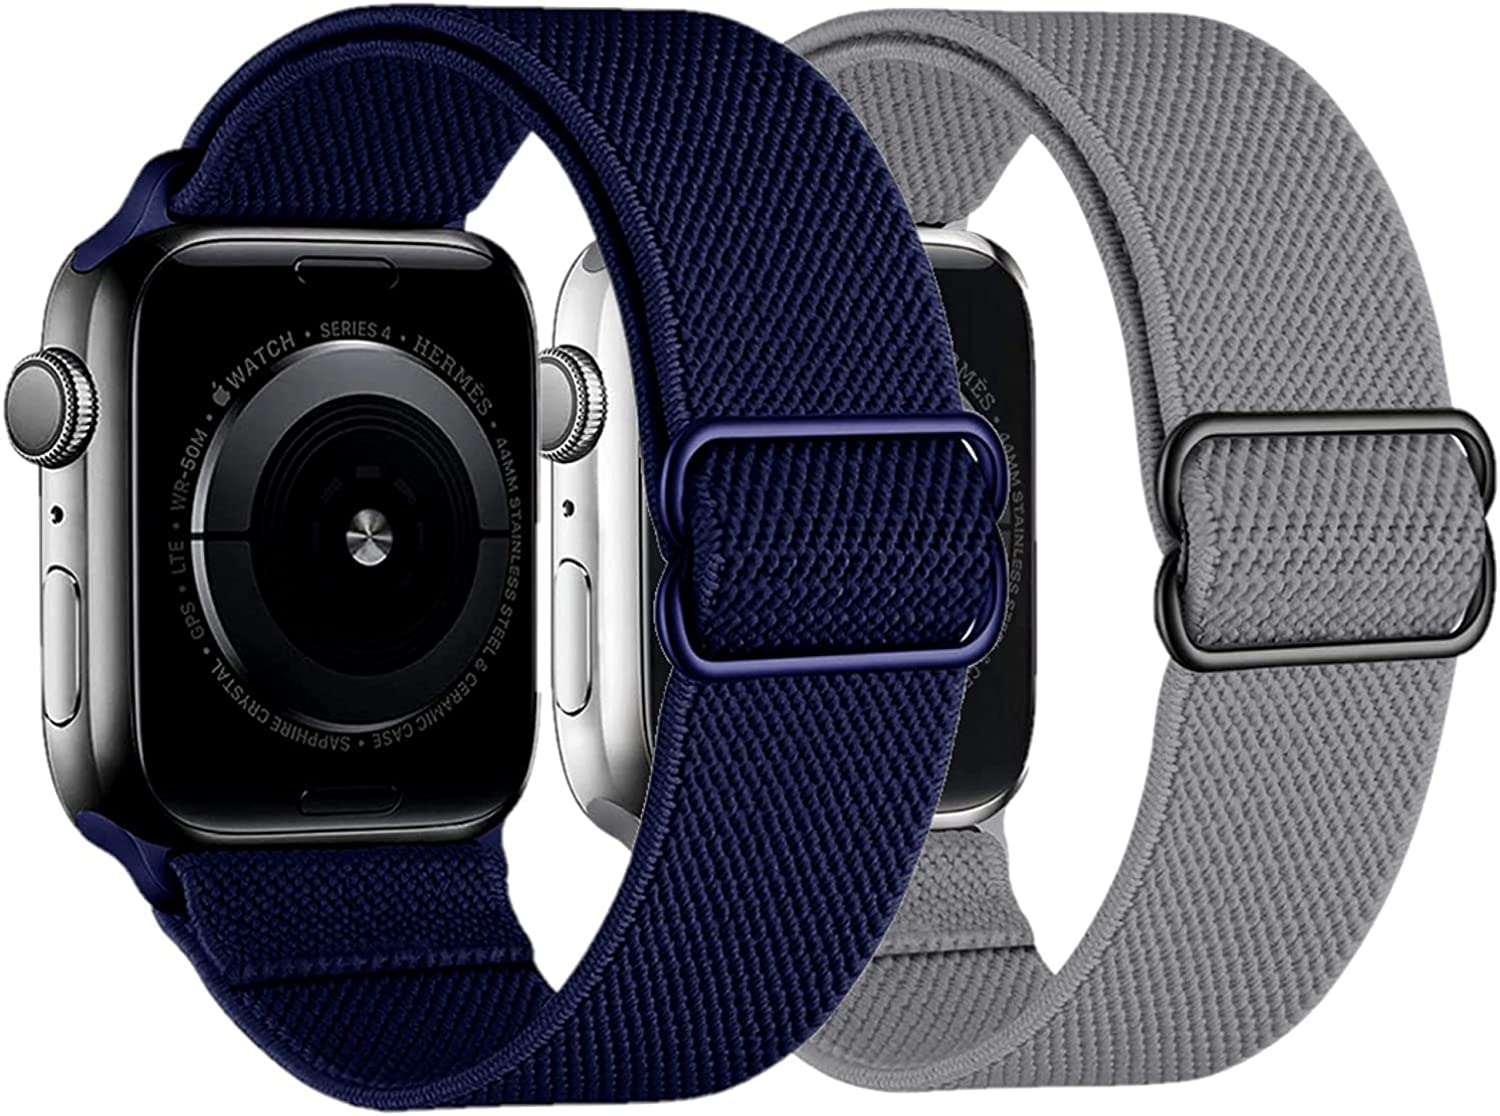 2 Pack Stretchy Straps Compatible with Apple Watch Bands 42mm 44mm, Adjustable Braided Solo Loop Nylon Bands Compatible for iwatch series 6/5/4/3/2/1/SE Men & Women, Deep Grey/Deep Navy Blue